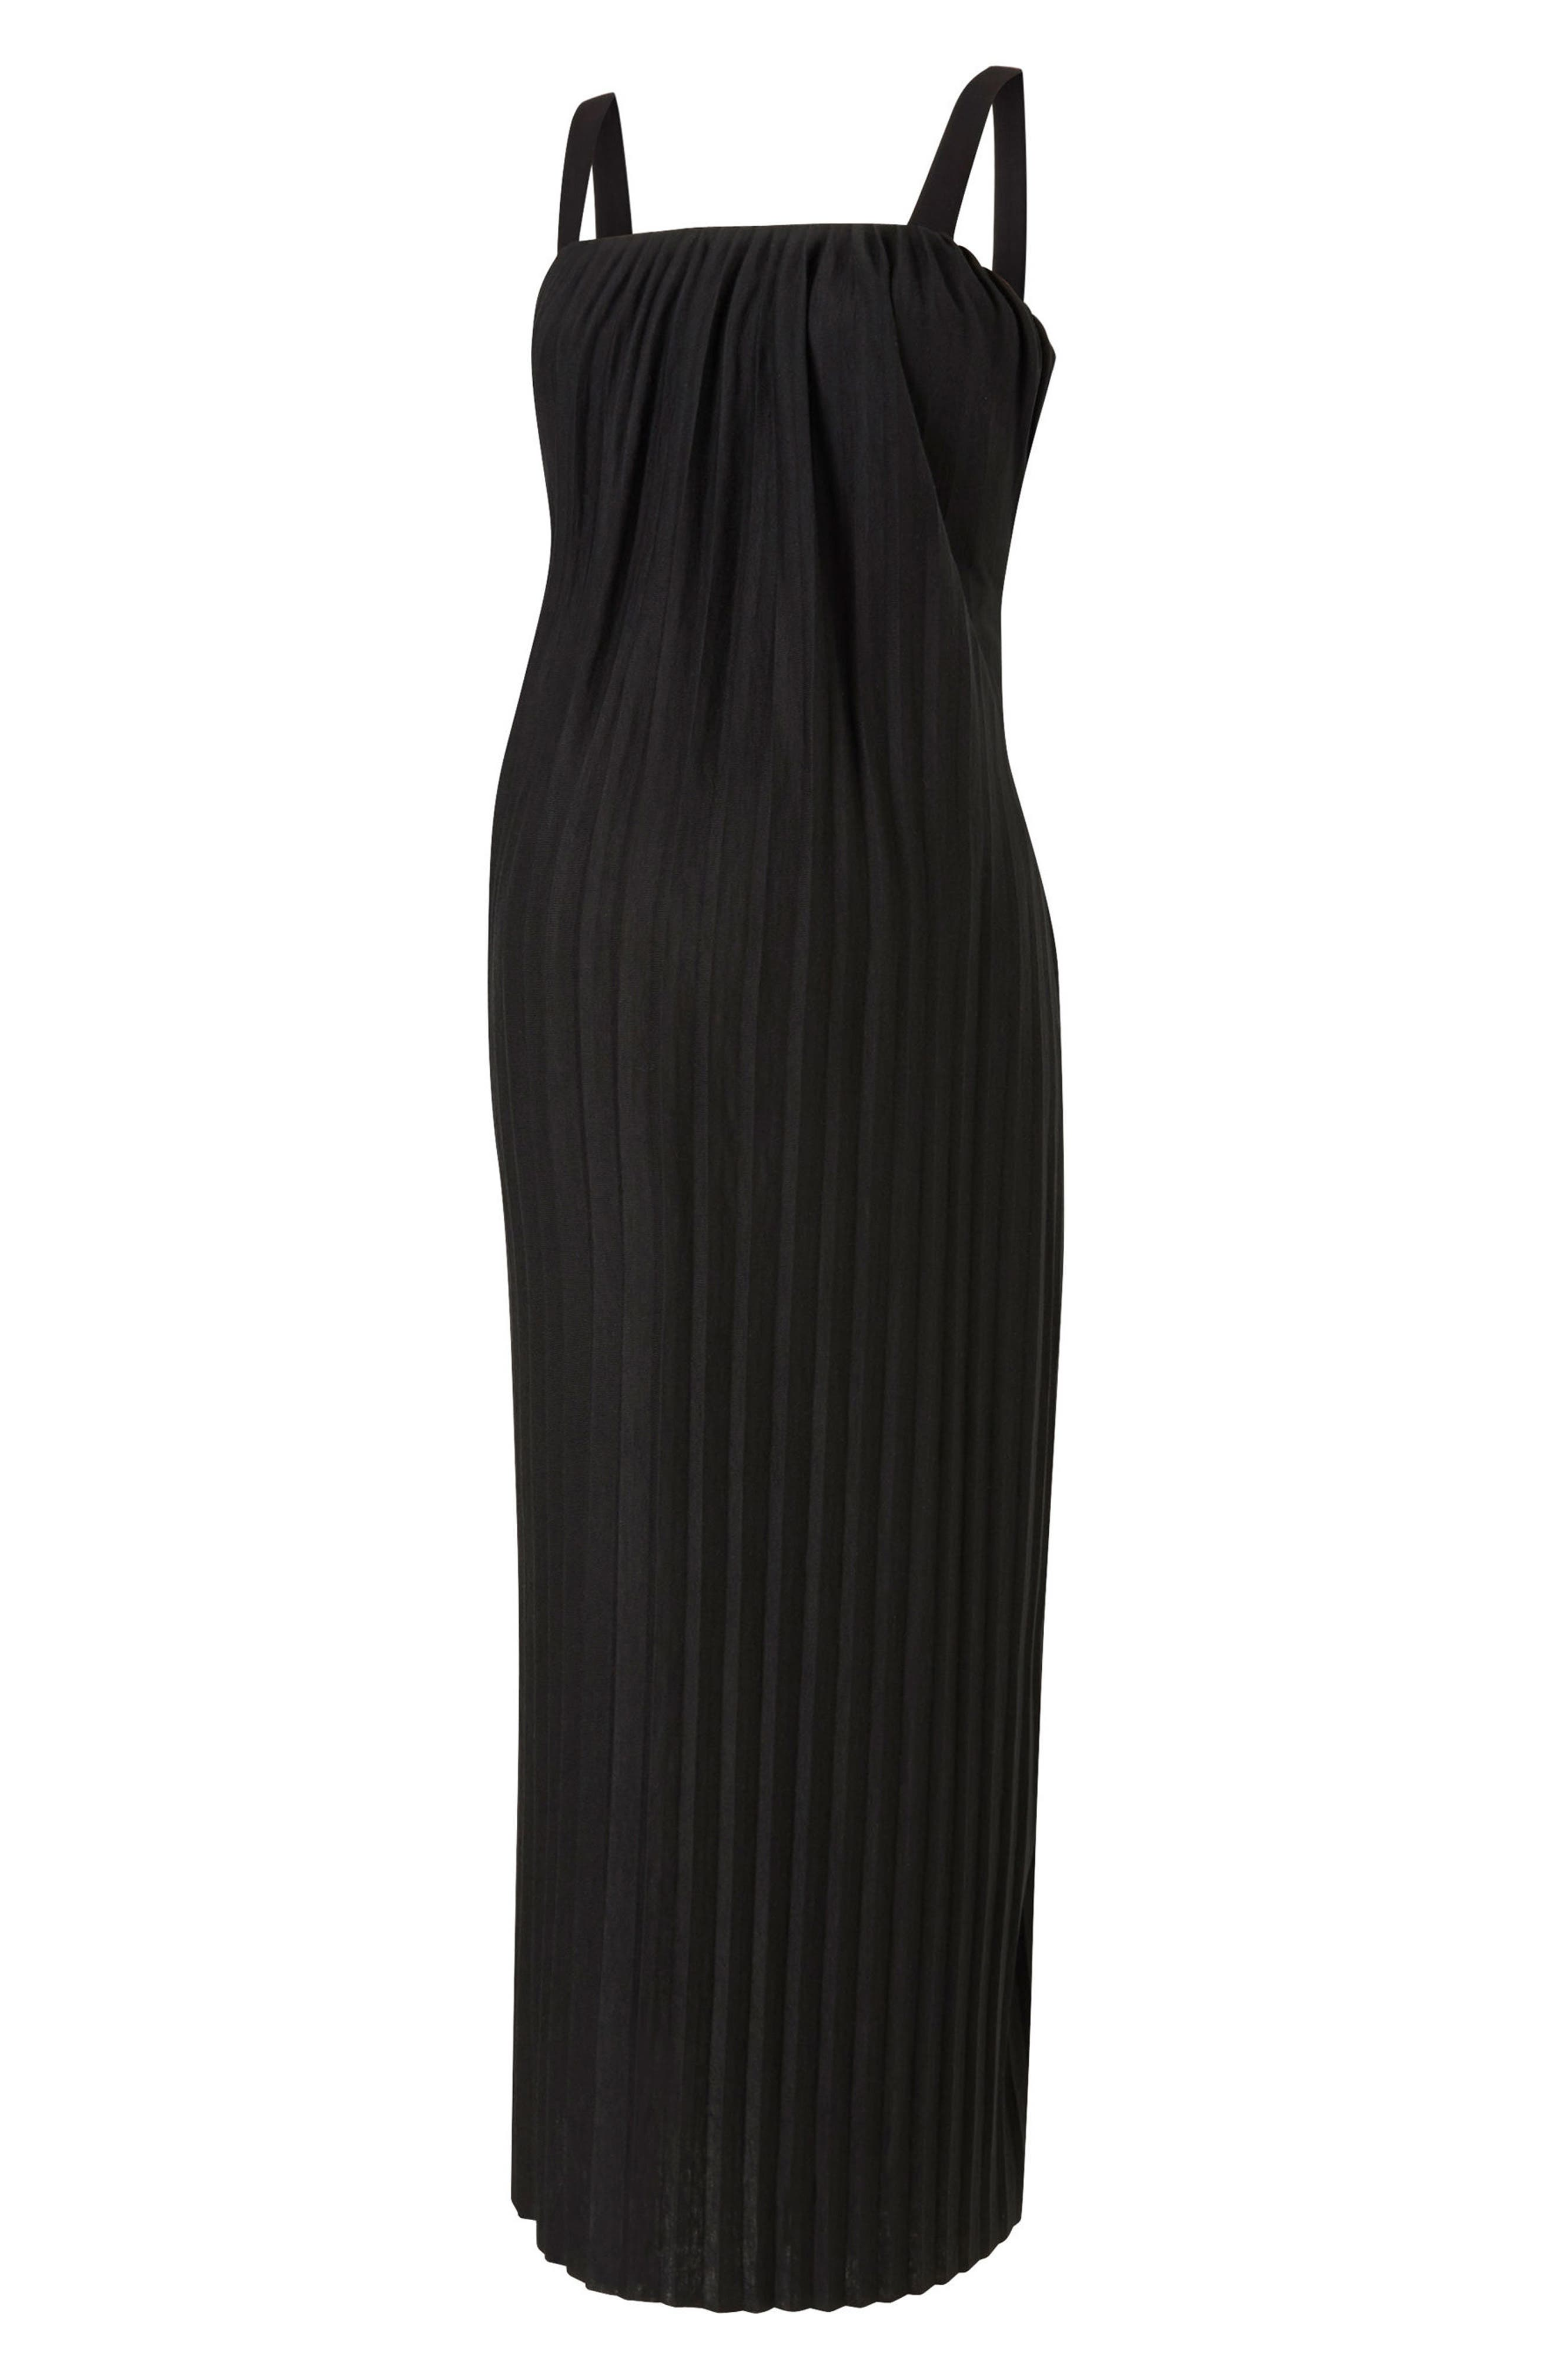 Main Image - Isabella Oliver Justine Pleated Maternity Dress